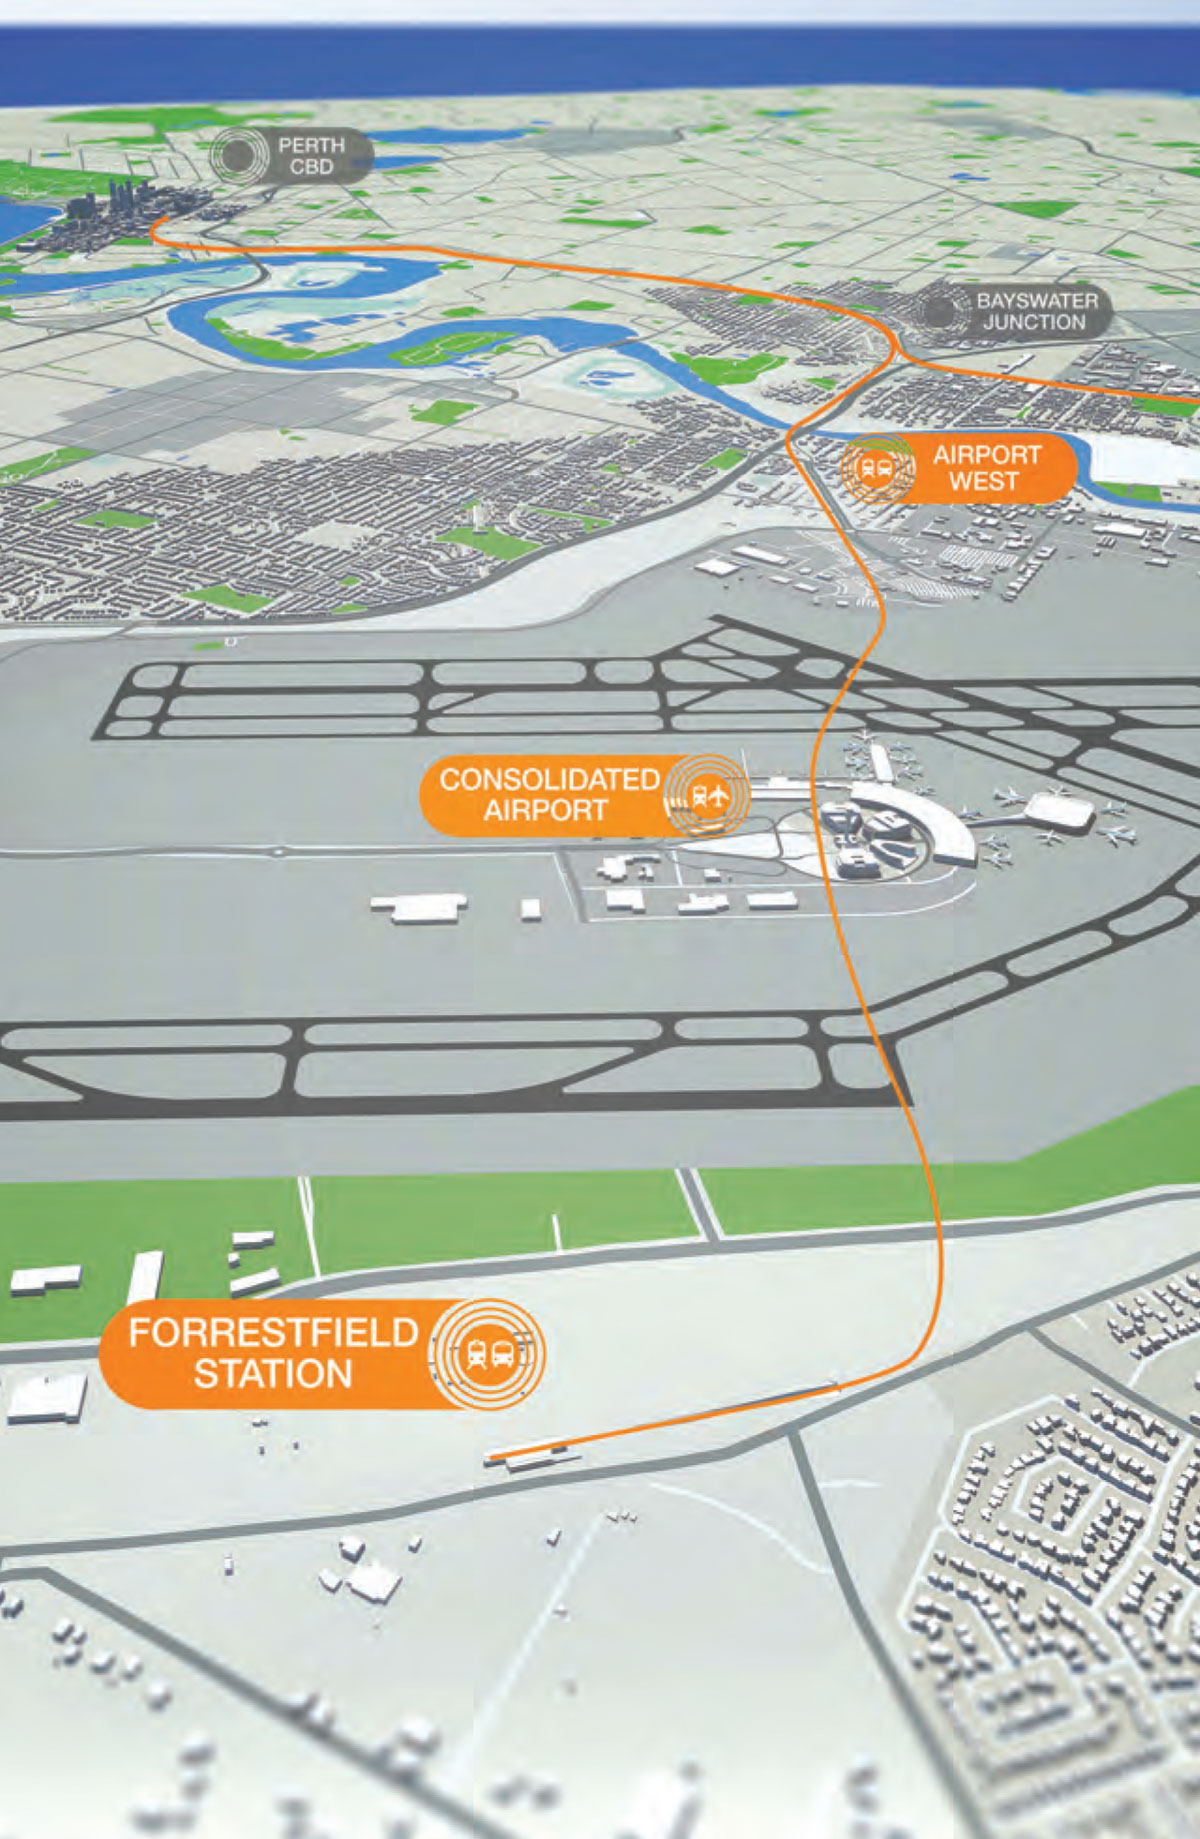 Forrestfield Airport Link map.